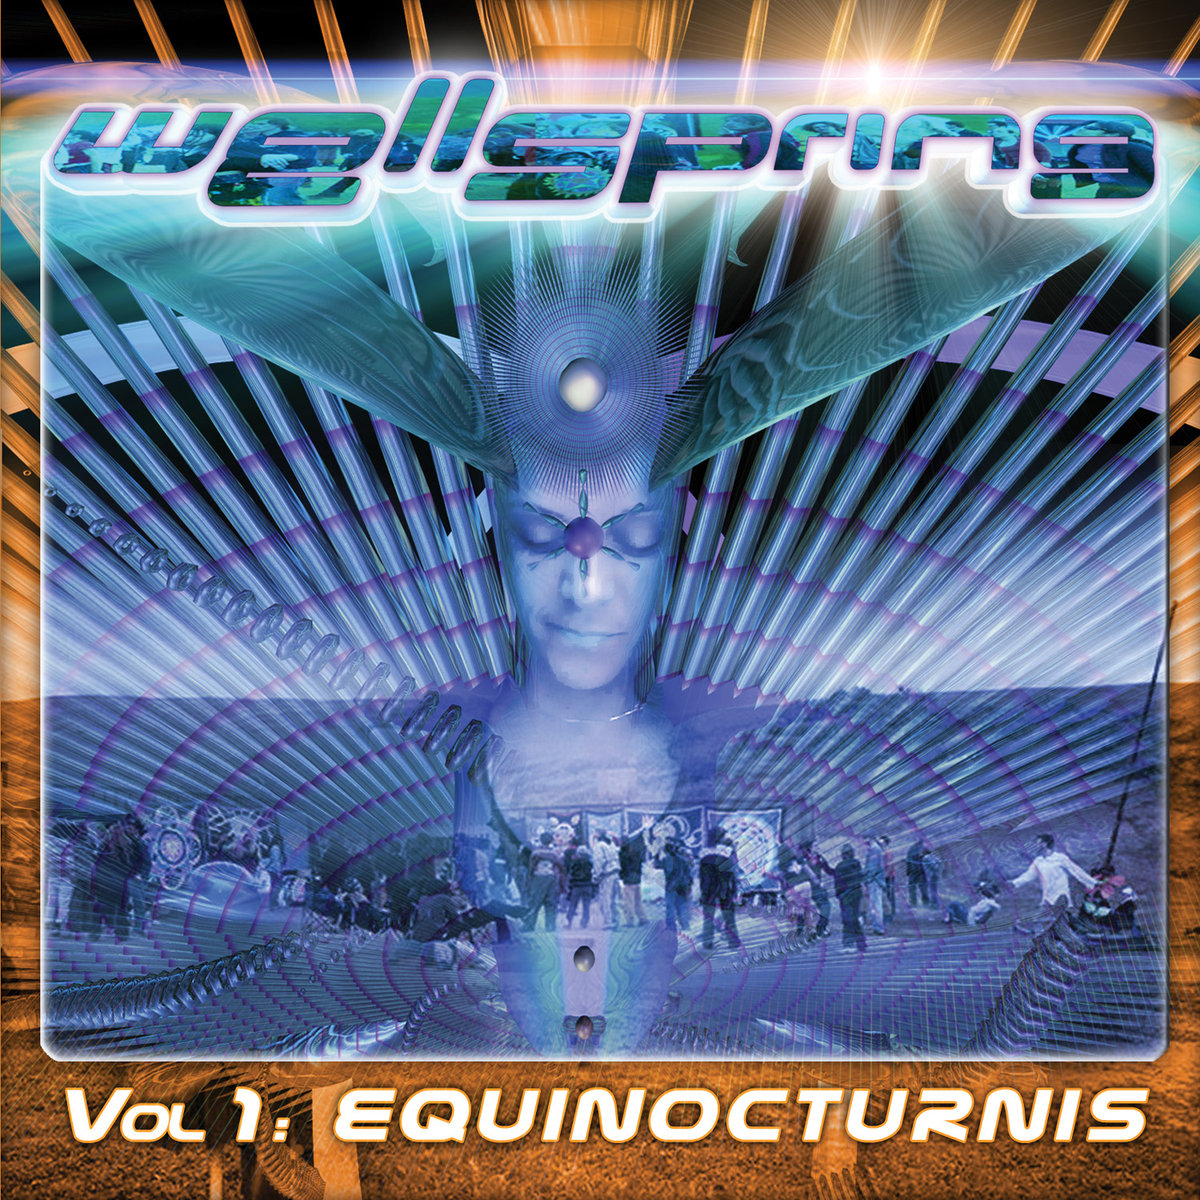 Random - 13 Again @ 'Various Artists - Wellspring Vol. 1: Equinocturnis' album (electronic, goa)